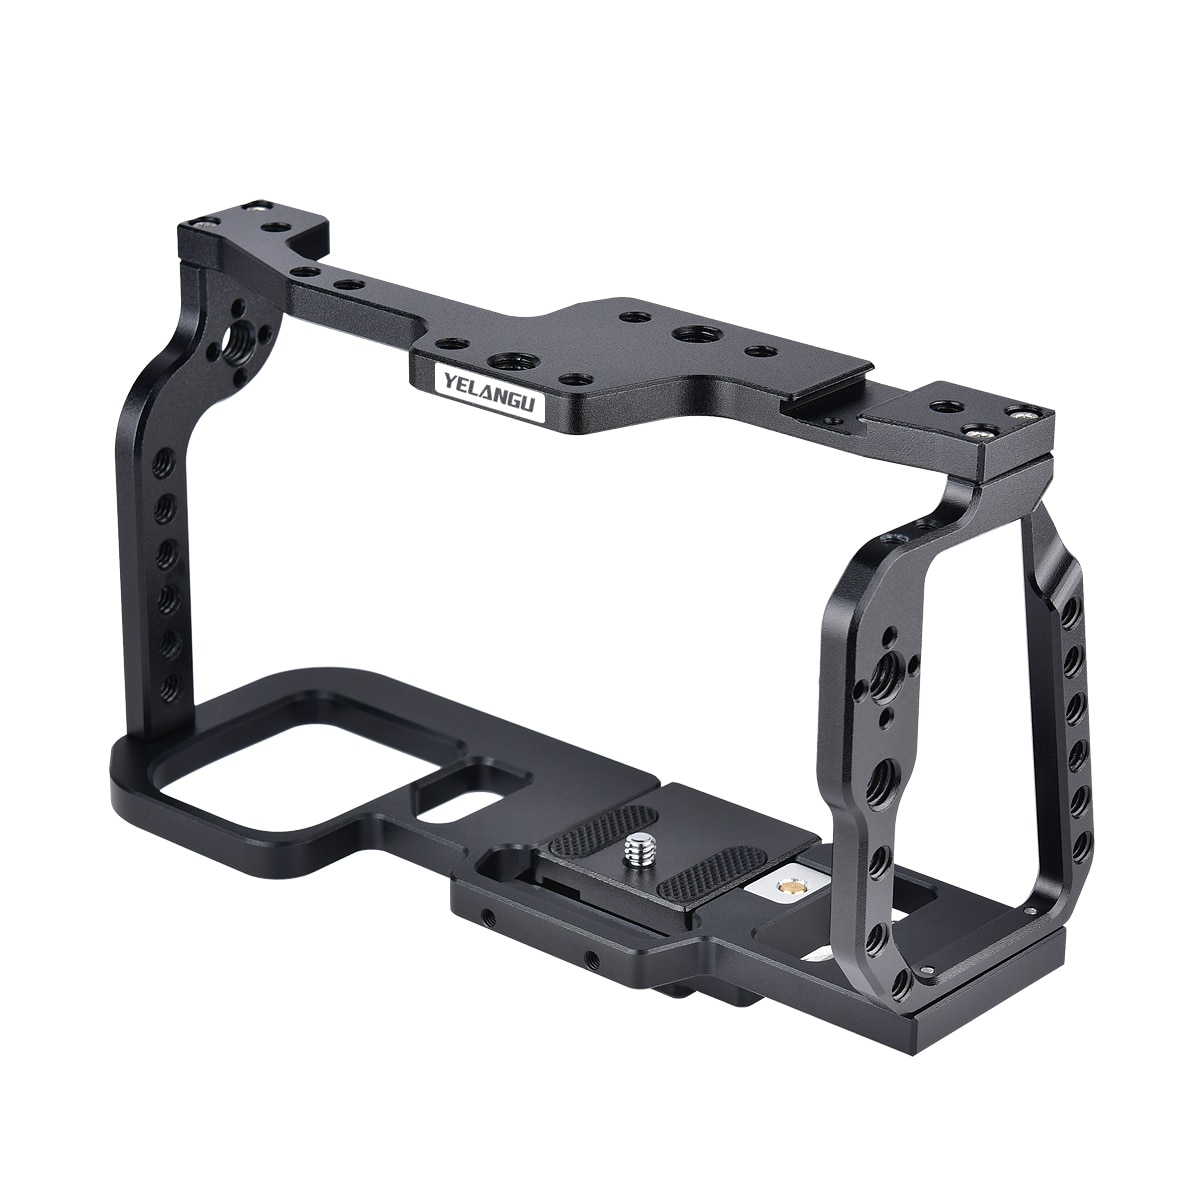 YELANGU C9 Camera Cage For BMPCC 4K/6K Aluminum Alloy Quick Release Plate with Top Handle Grip Camera Cage Support wholesale enlarge